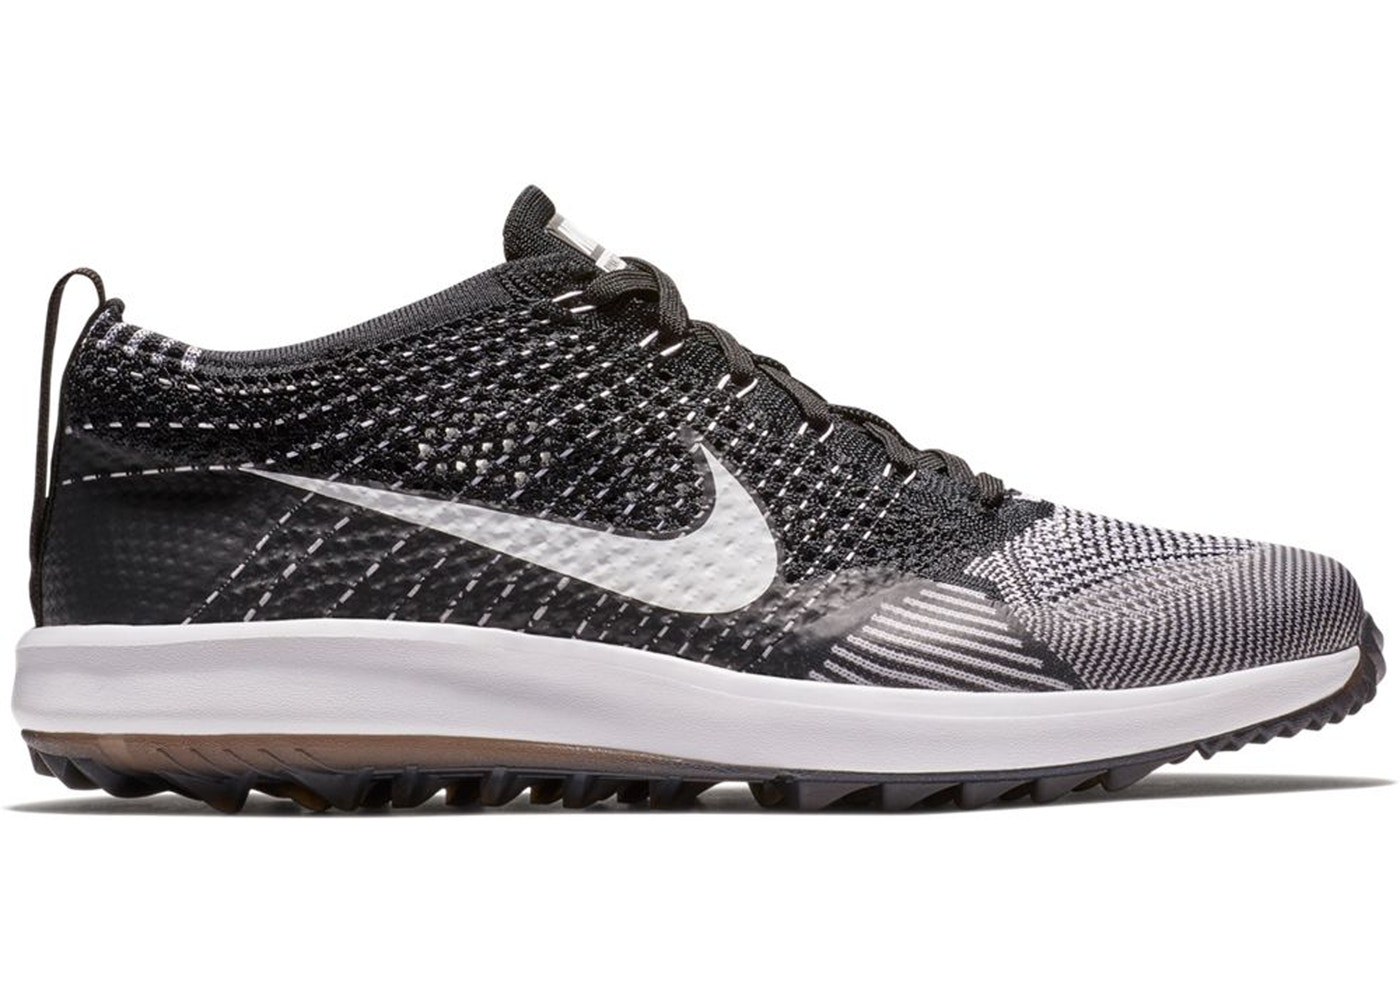 Nike Flyknit Racer G Cleat Cookies & Cream